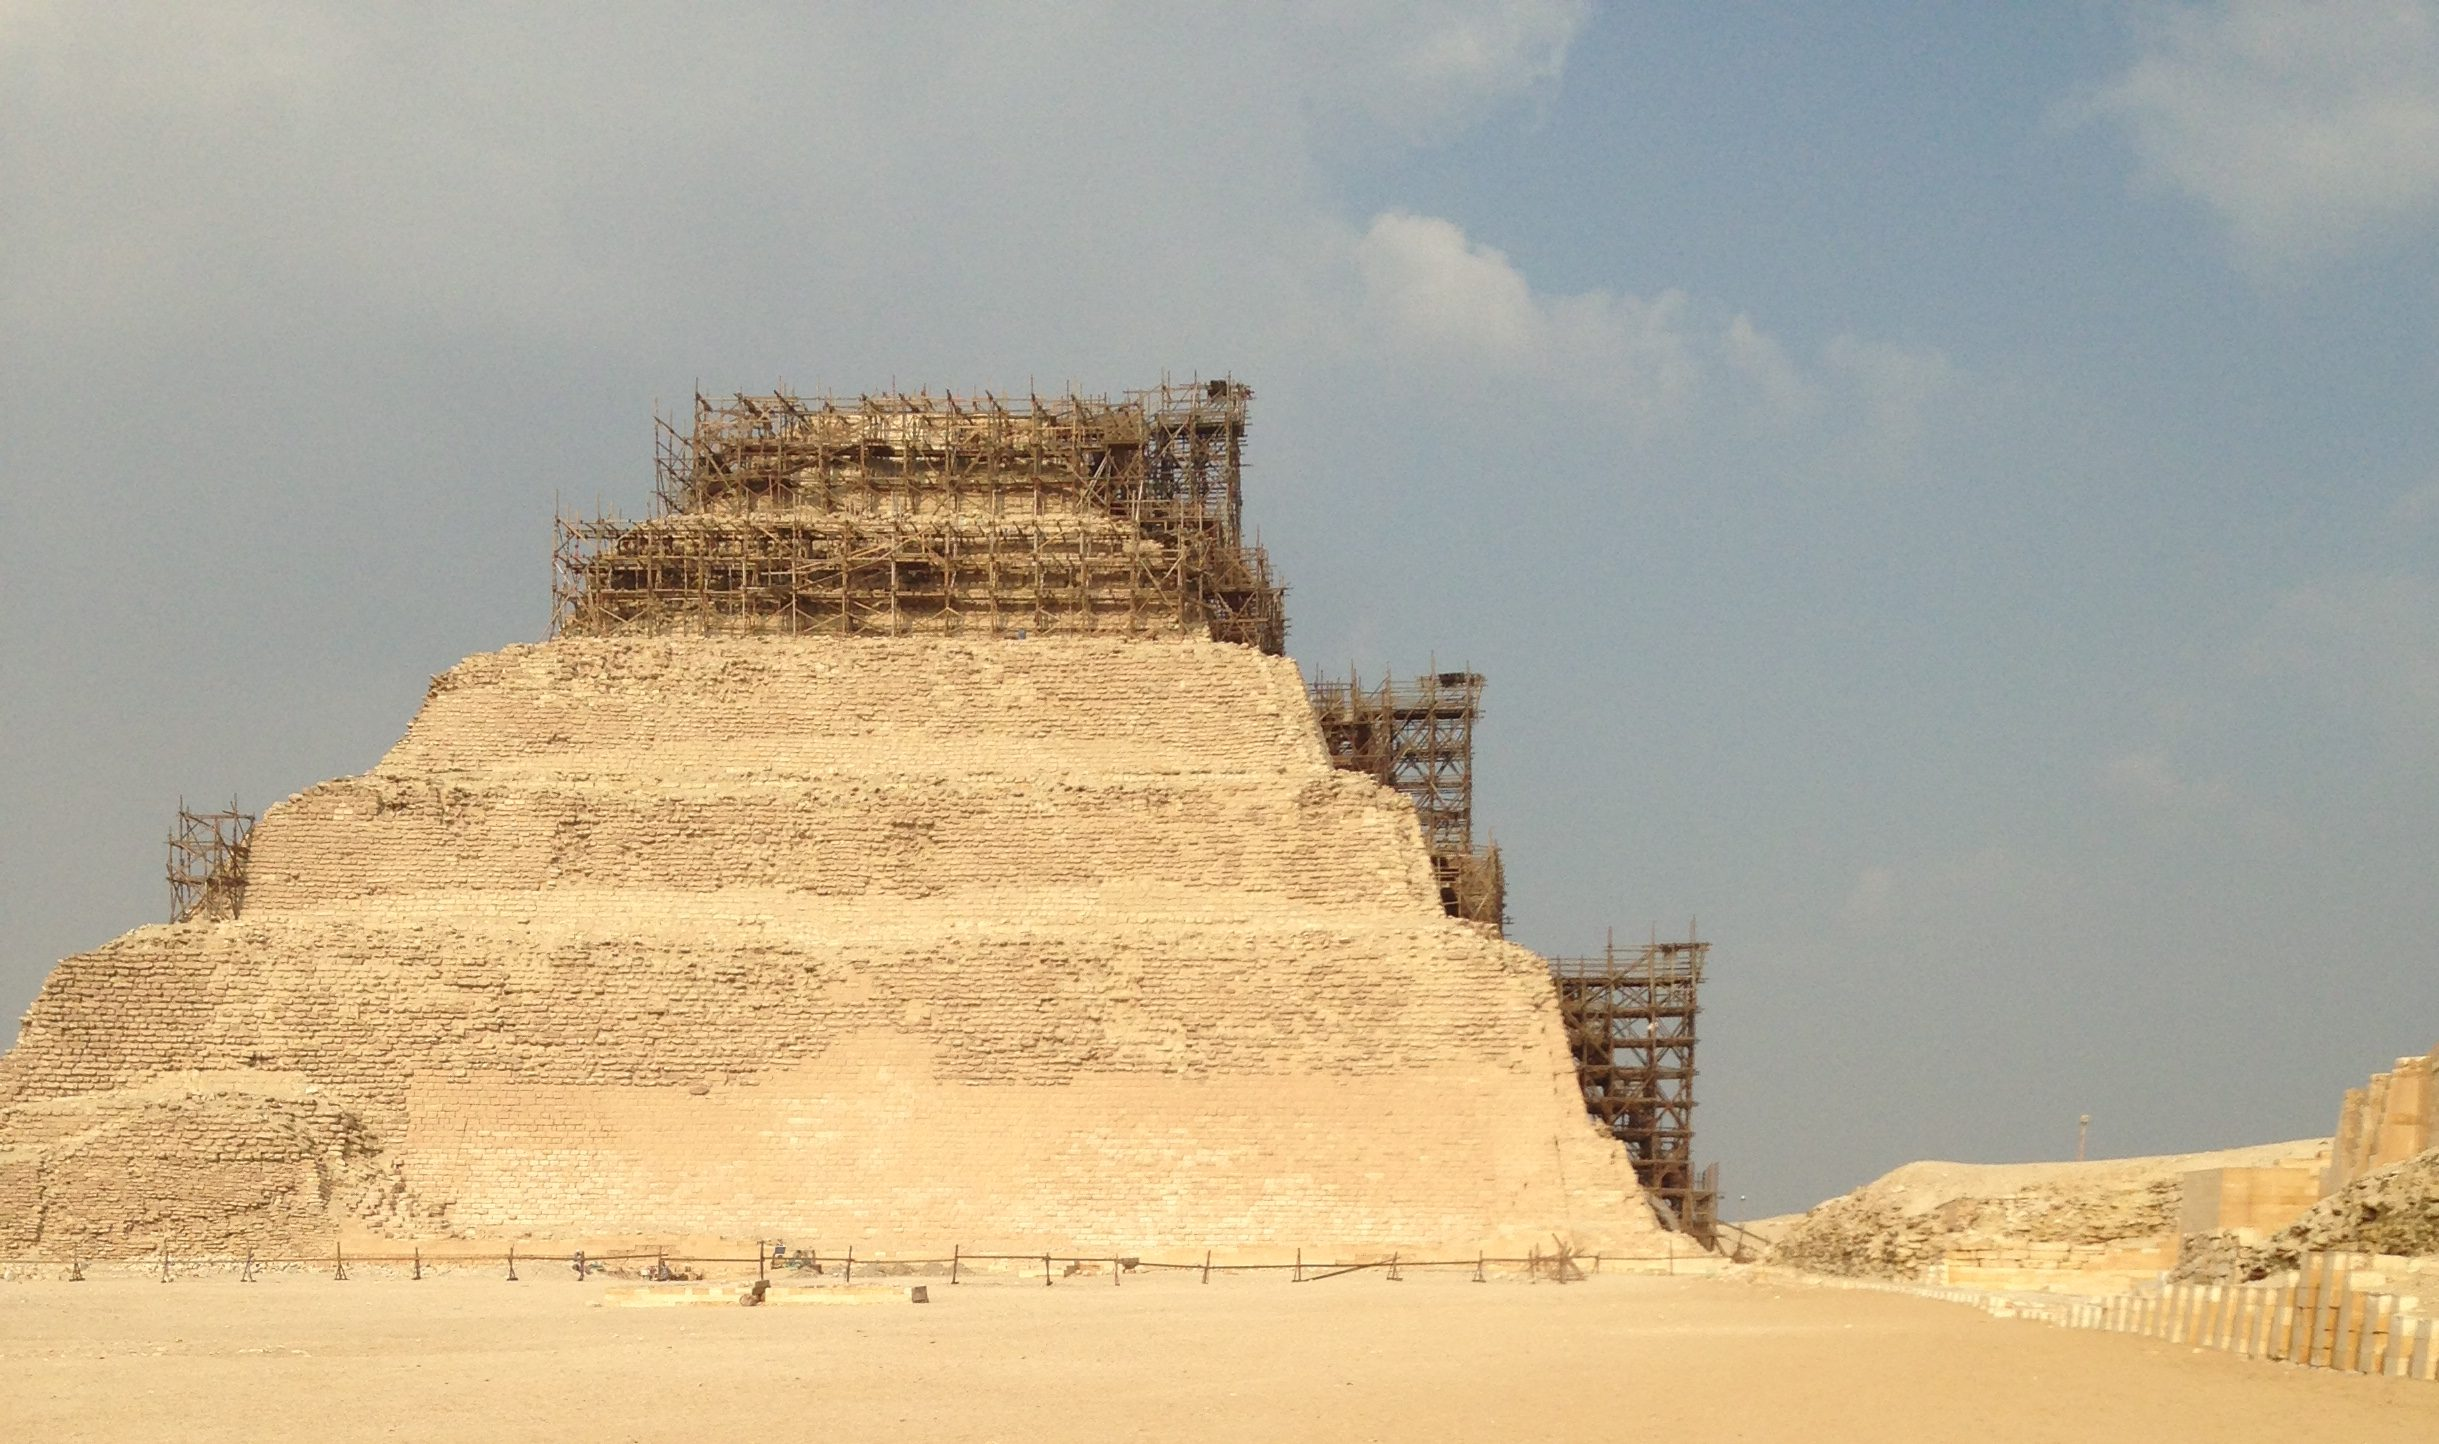 Sakkara pyramid in Egypt